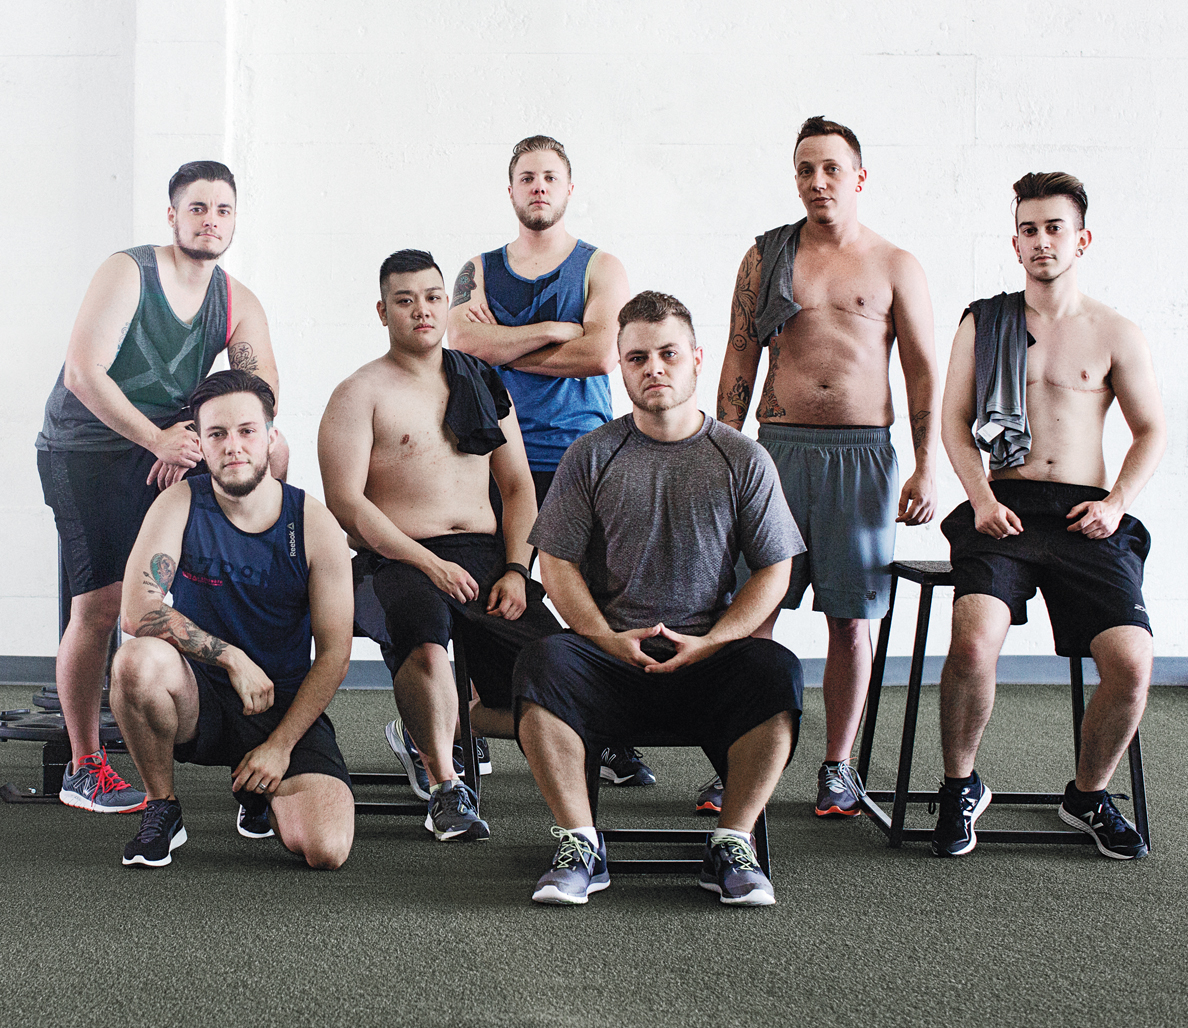 55a28ee5805d The Ultimate Transformation  Meet the Trans Men Who Are Redefining Their  Lives Through Fitness